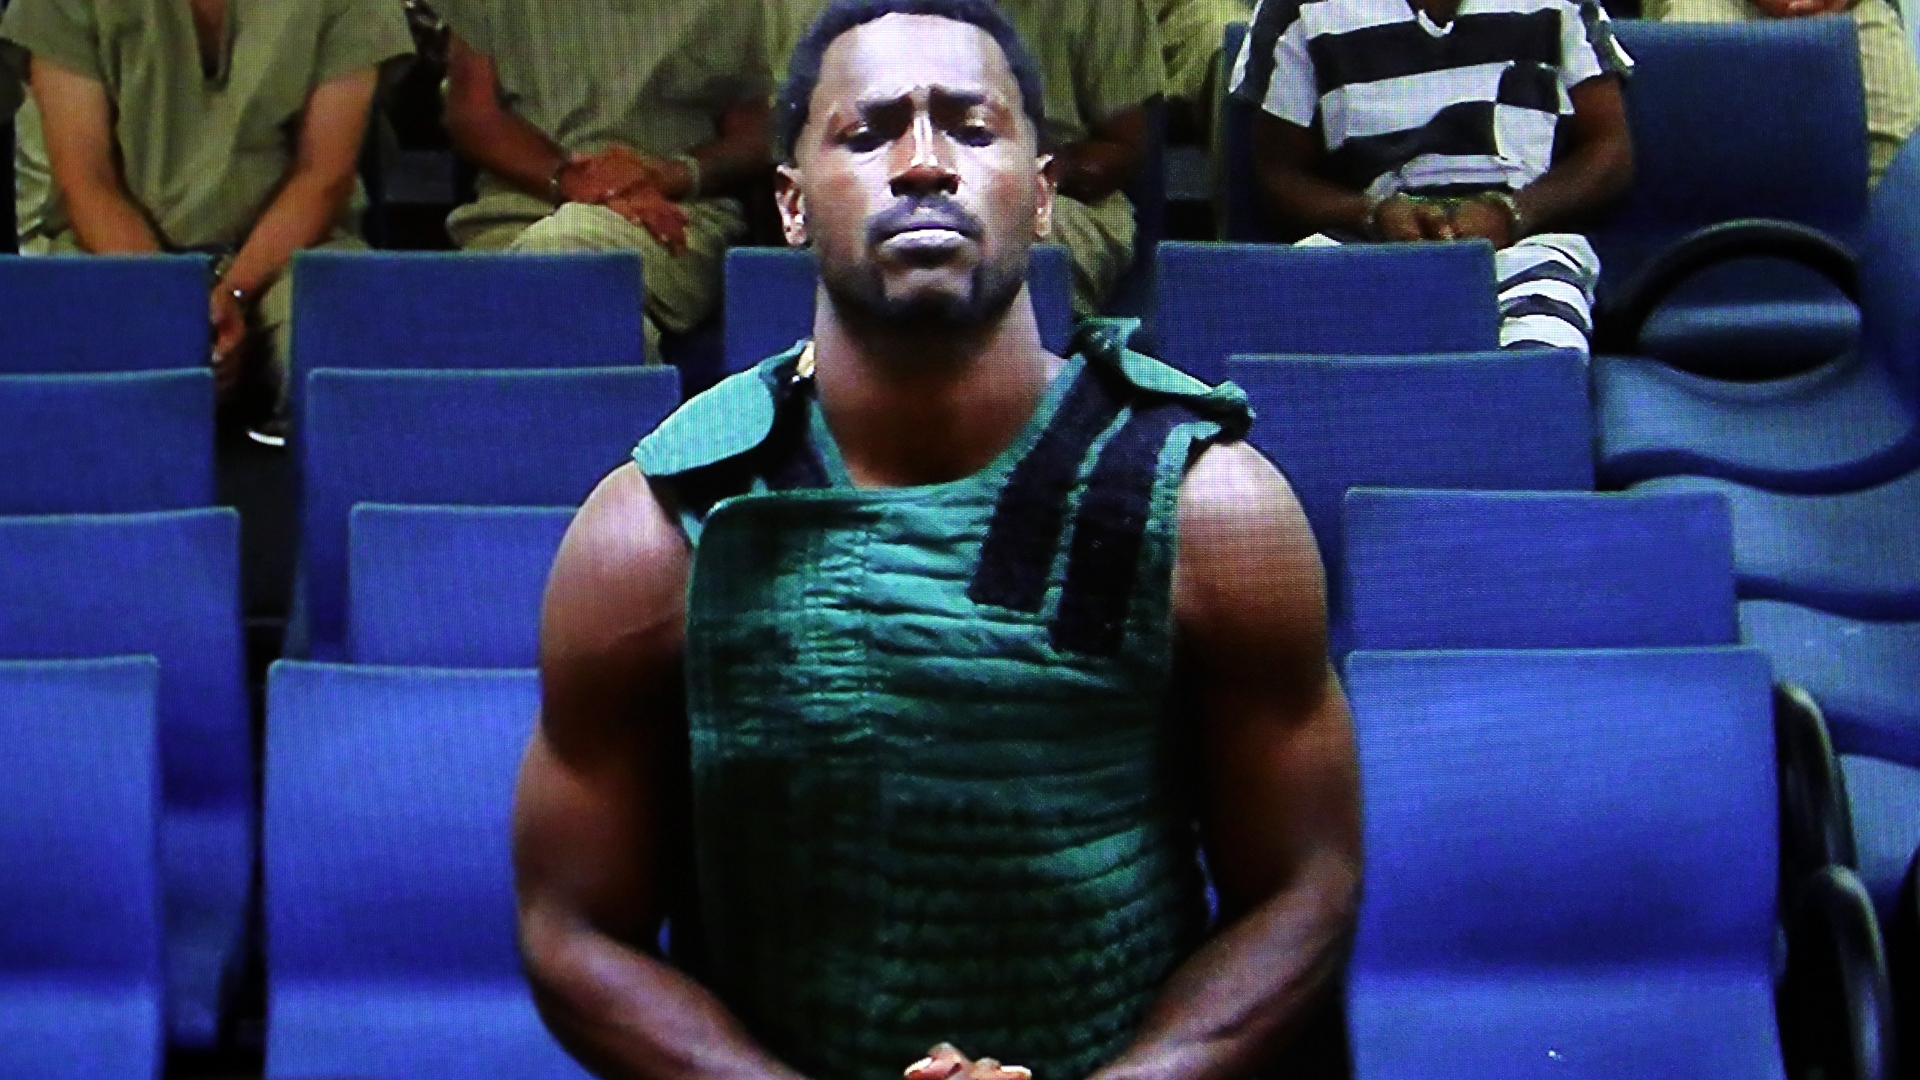 Antonio Brown Released From Jail On 110 000 Bond South Florida Sun Sentinel